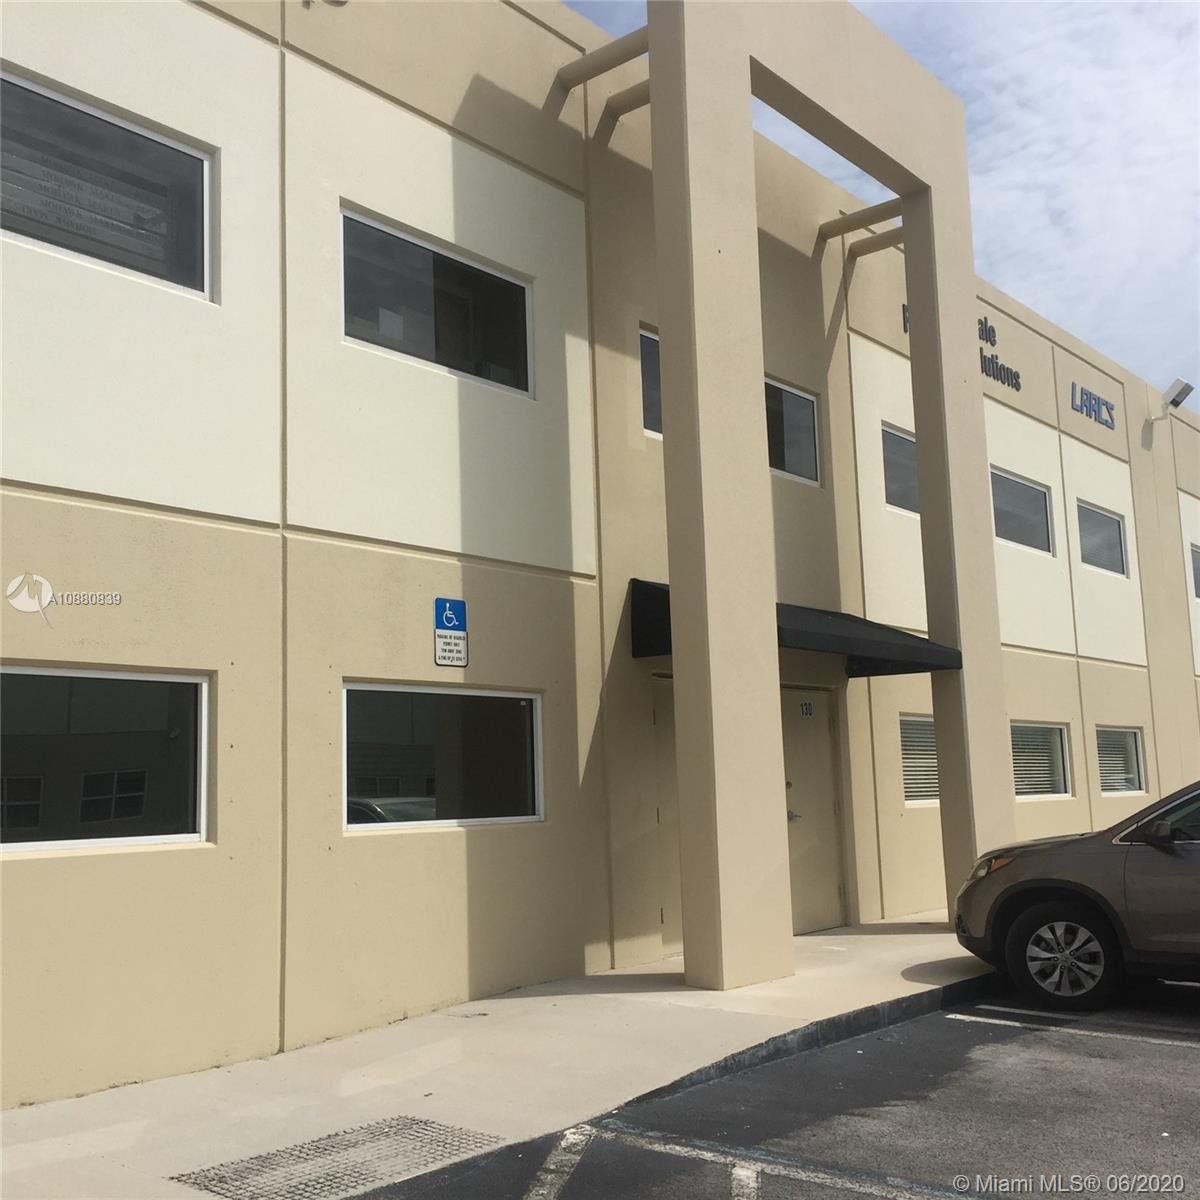 +/-4,000 sqft Dock-Height office/warehouse with nice office distribution and ample, very functional space.   Located in an excellent location just minutes away from the Turnpike, Dolphin Mall and Miami International Mall.